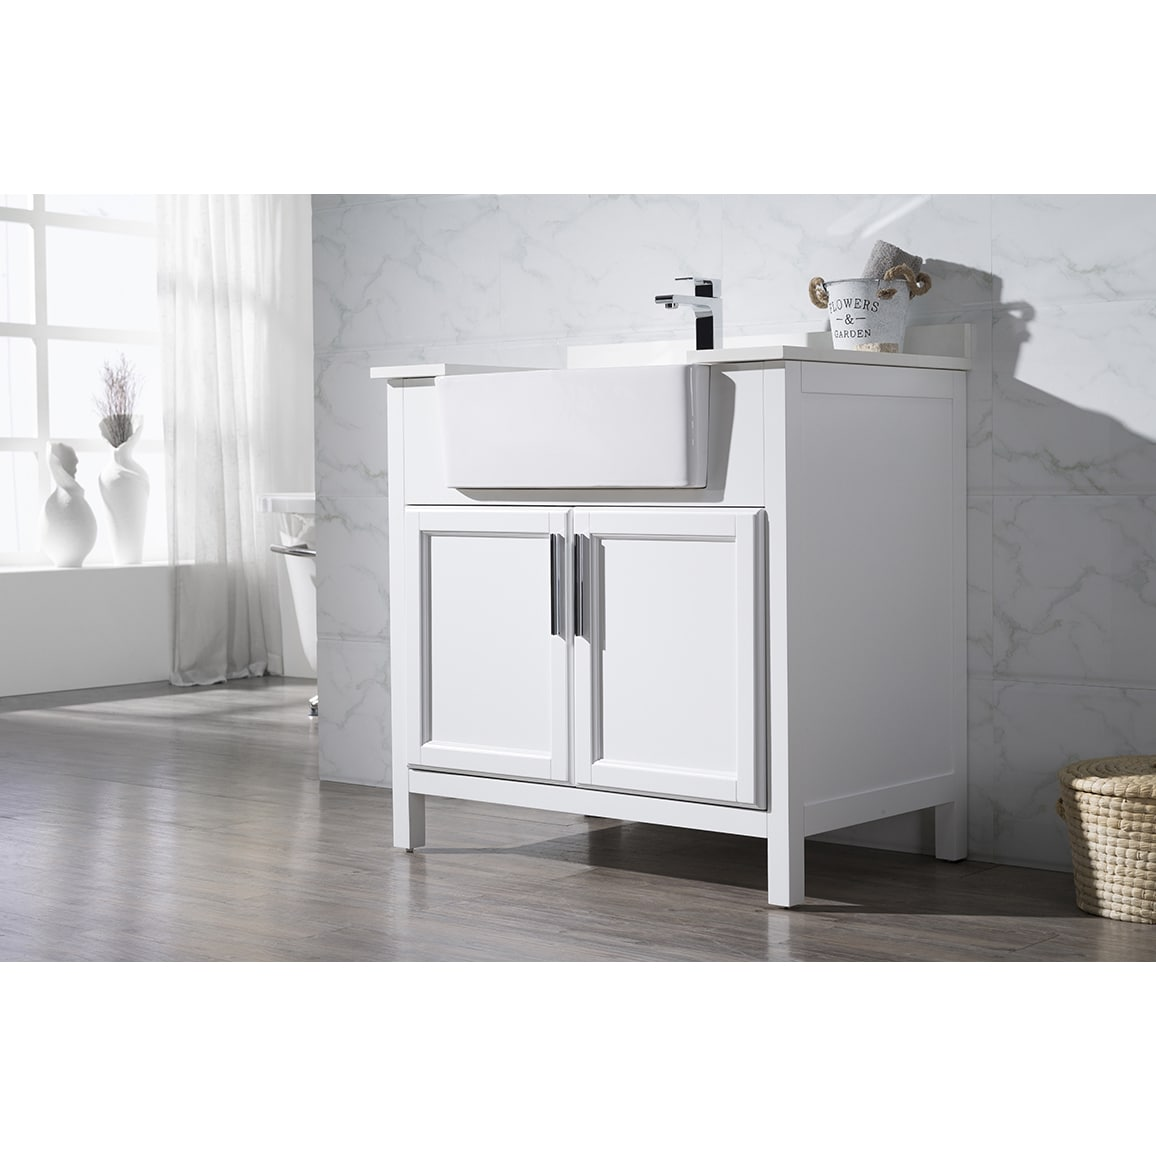 Shop Stufurhome Tyron White 36 Inch Farmhouse Apron Single Sink